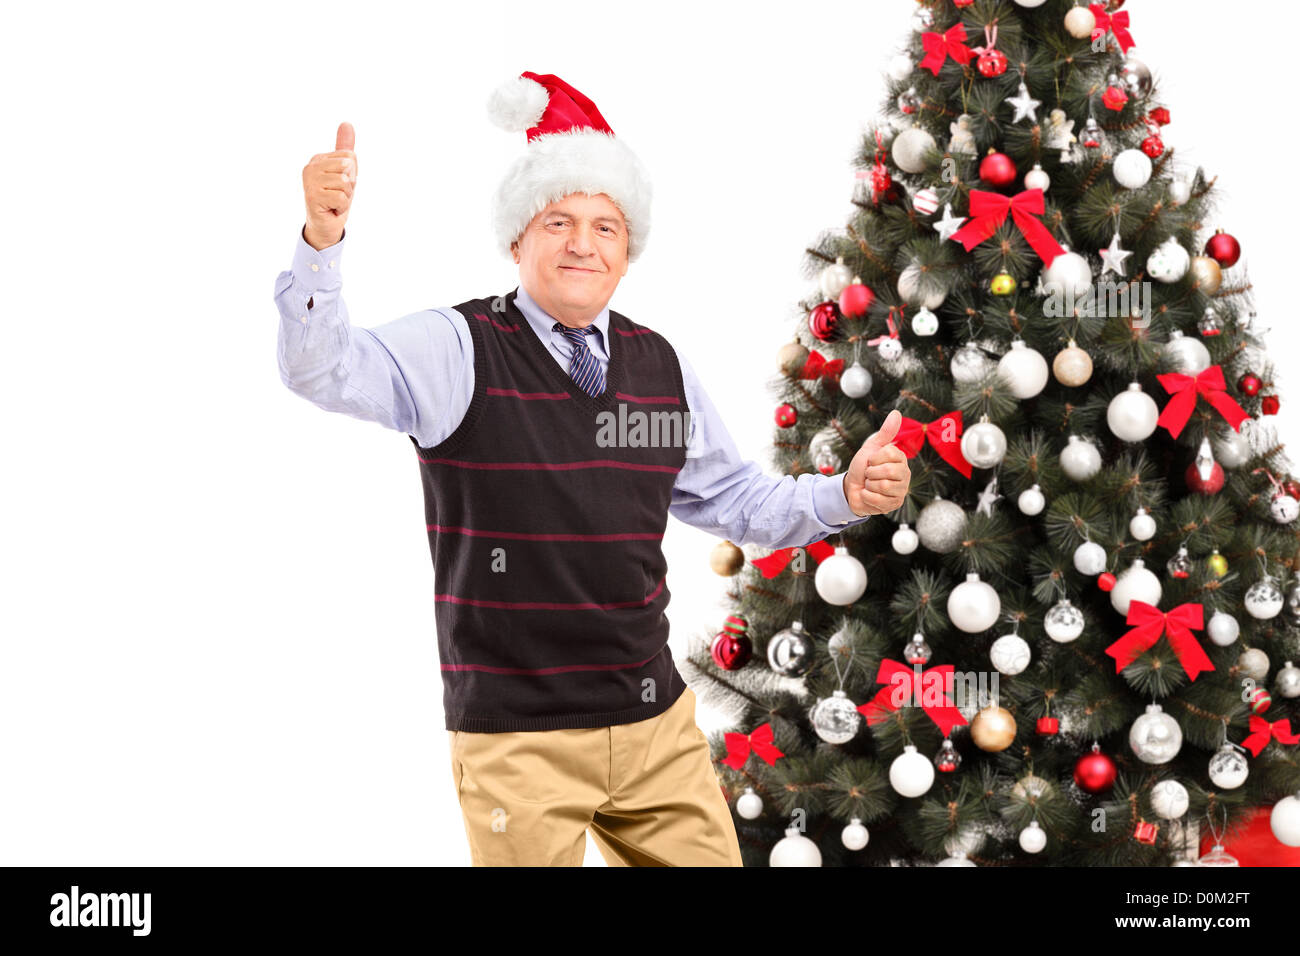 a happy mature gentleman giving thumbs up with christmas tree in the